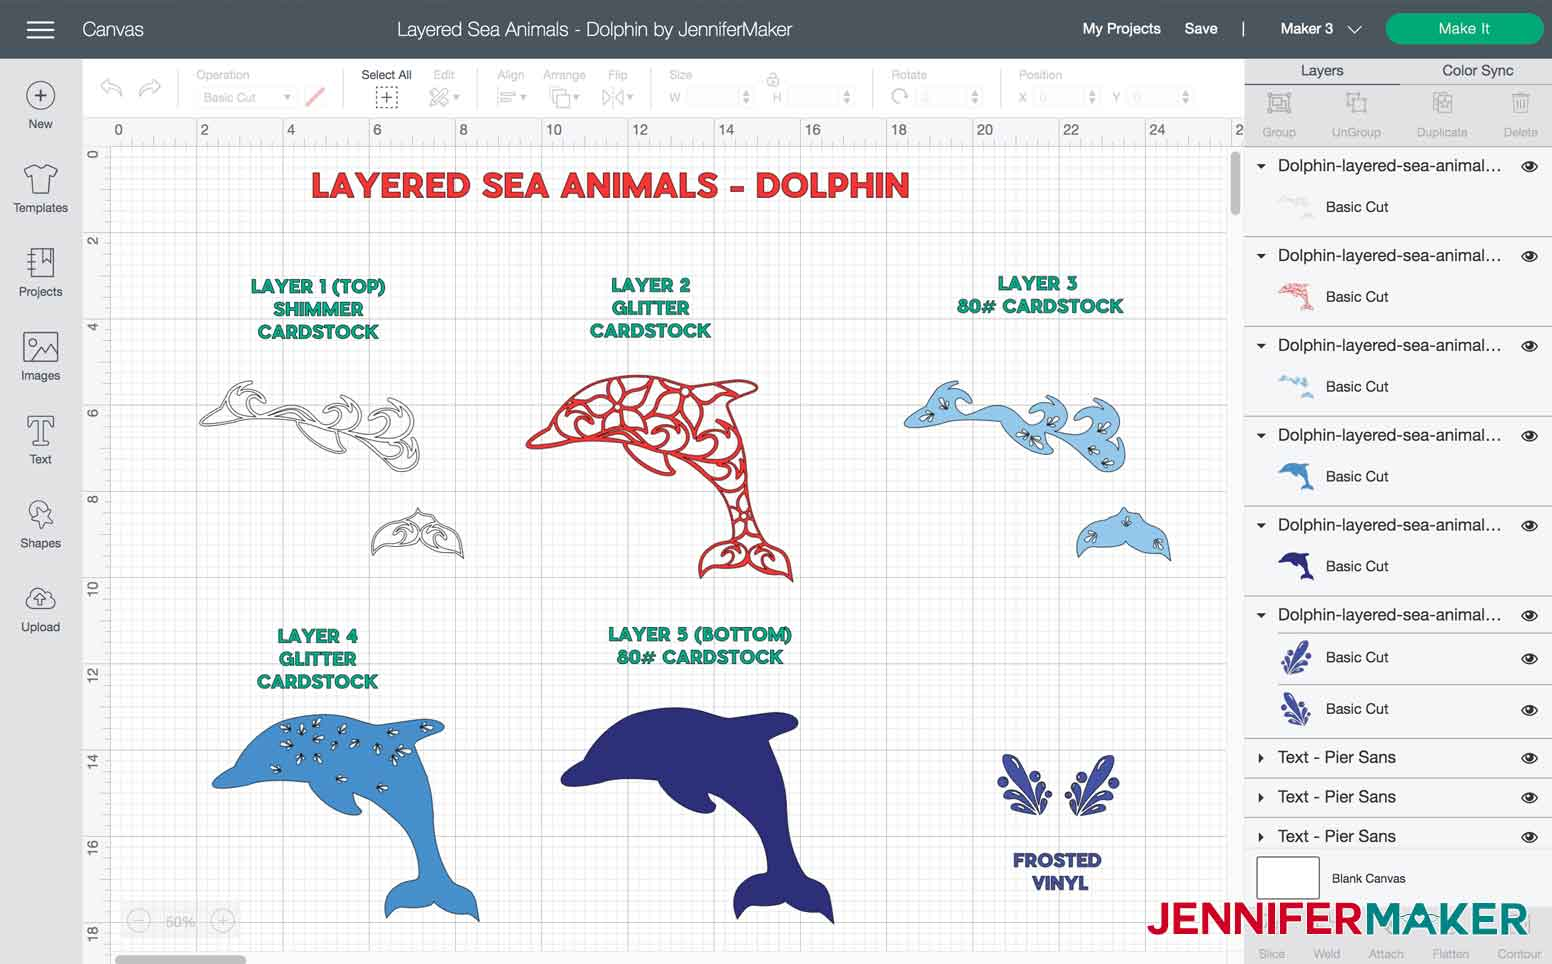 Layers and materials used to make Dolphin Layered Sea Animal